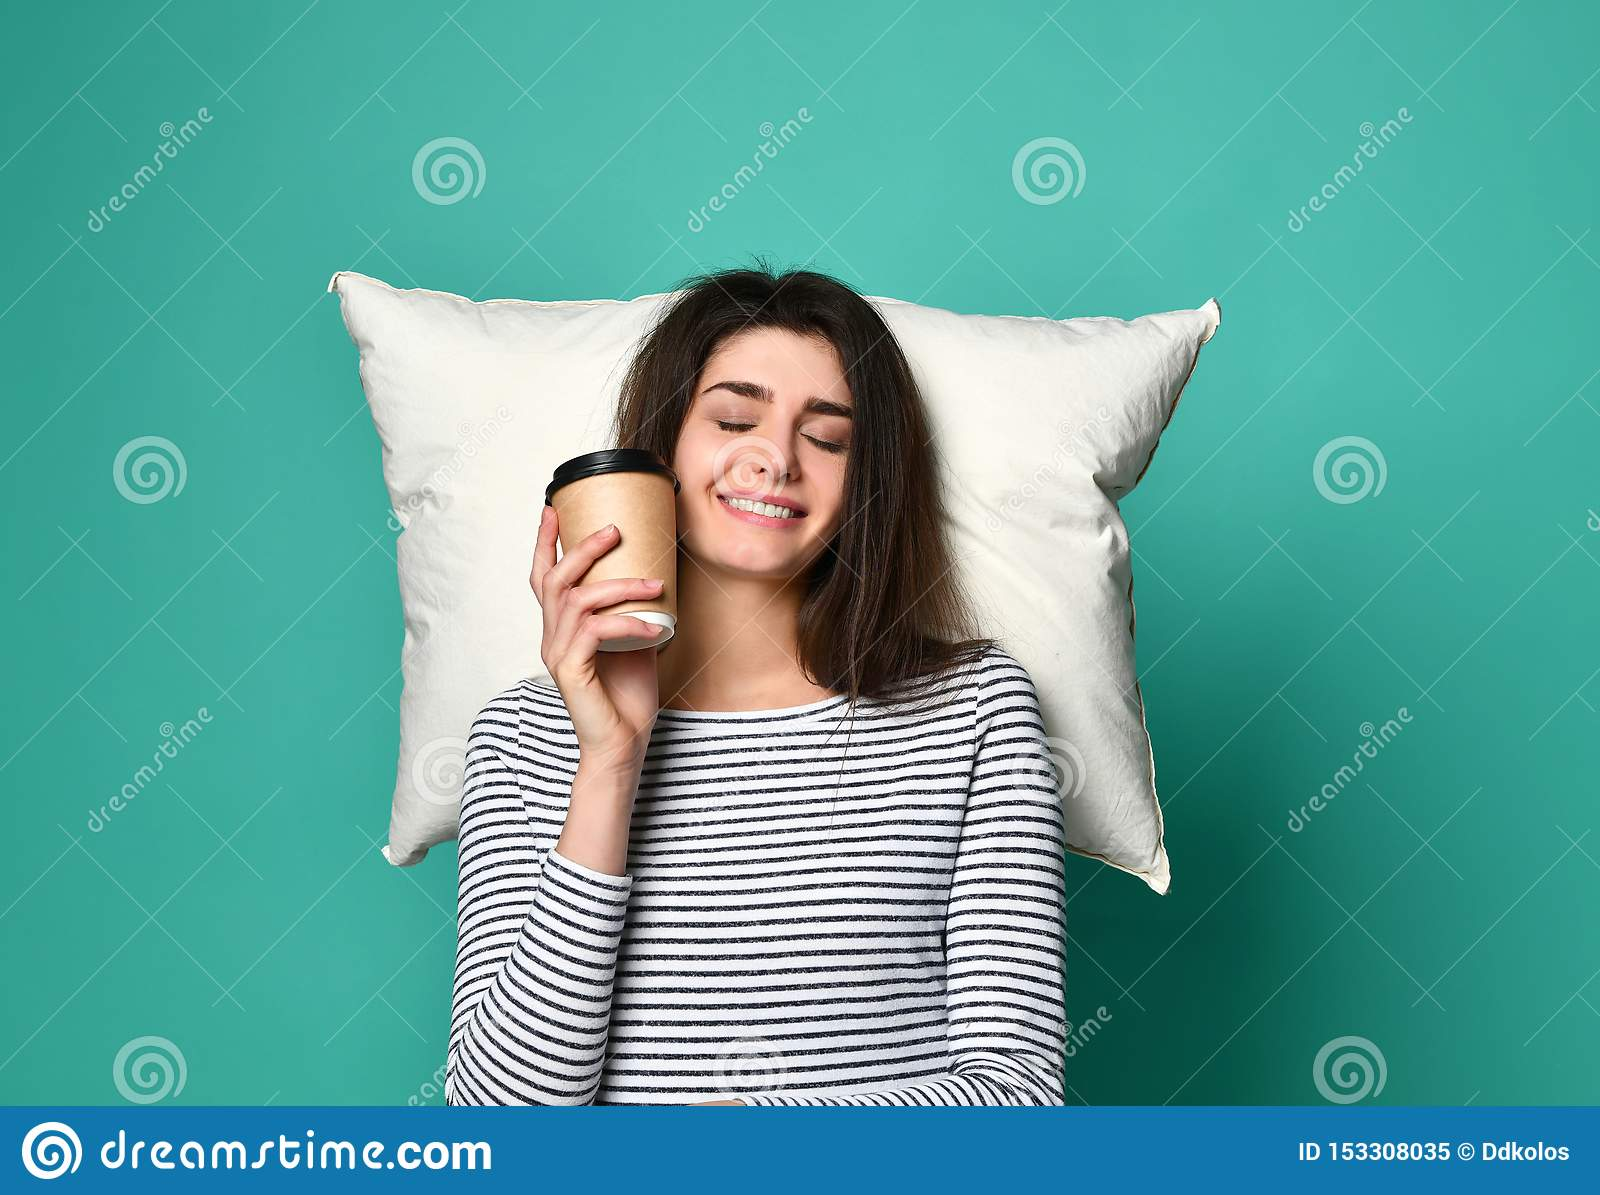 Happy young woman with a cup of coffee or tea in her hands, dreams on a pillow about anything